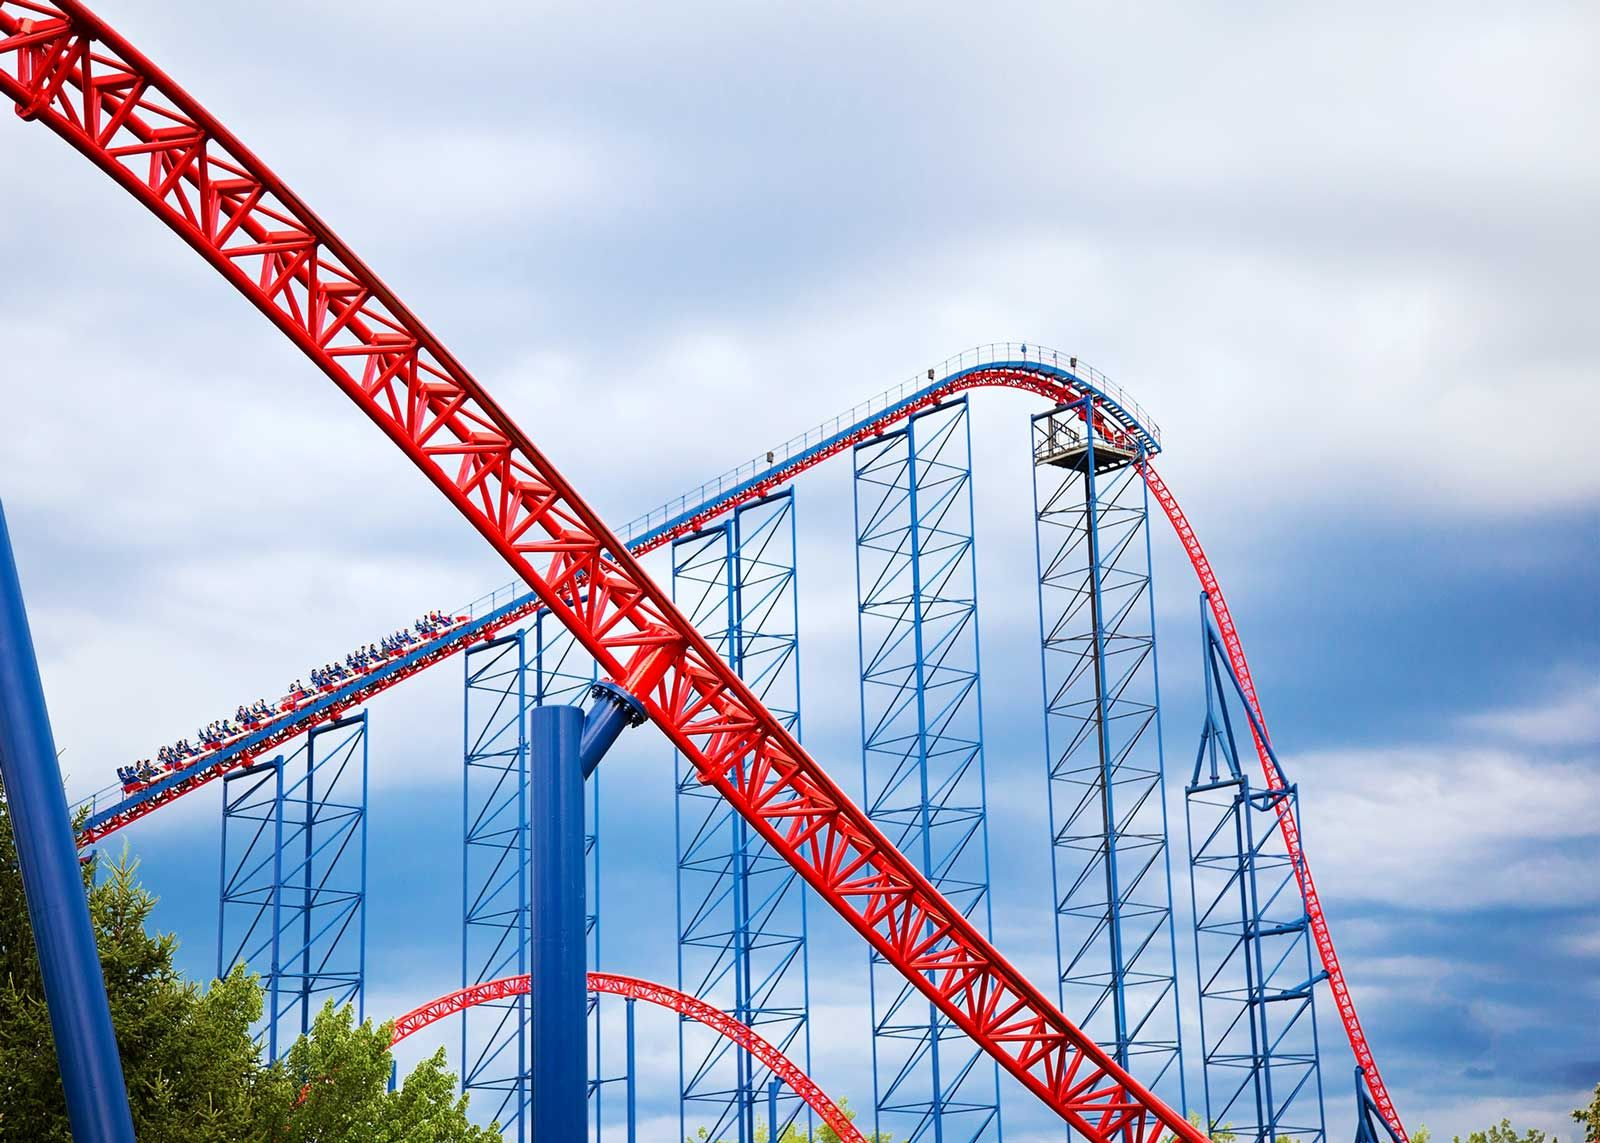 All Six Flags Parks In The Usa Ranked Improb Six Flags Great Adventure Six Flags New Roller Coaster